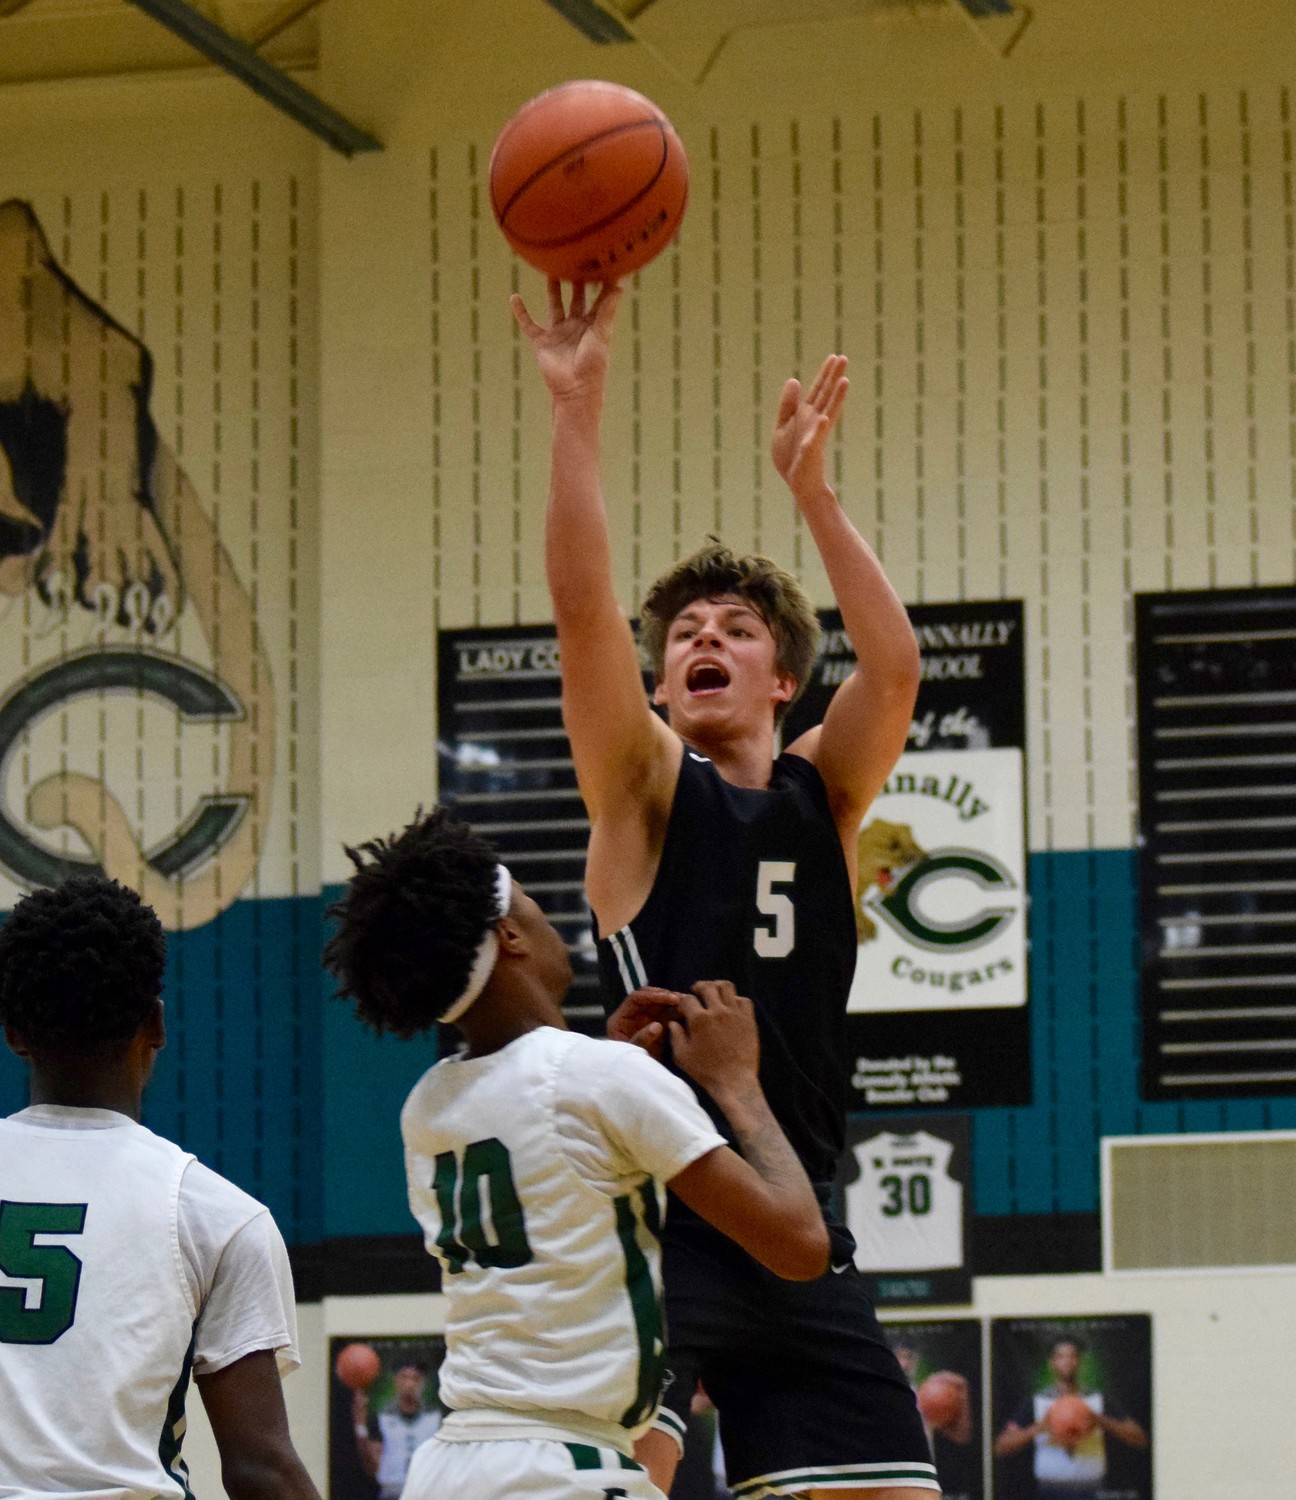 Jacob Hester scored a team-high 19 points and Cedar Park beat Connally 60-53 on Friday night to take the top spot in District 17-5A and stay unbeaten in district play.